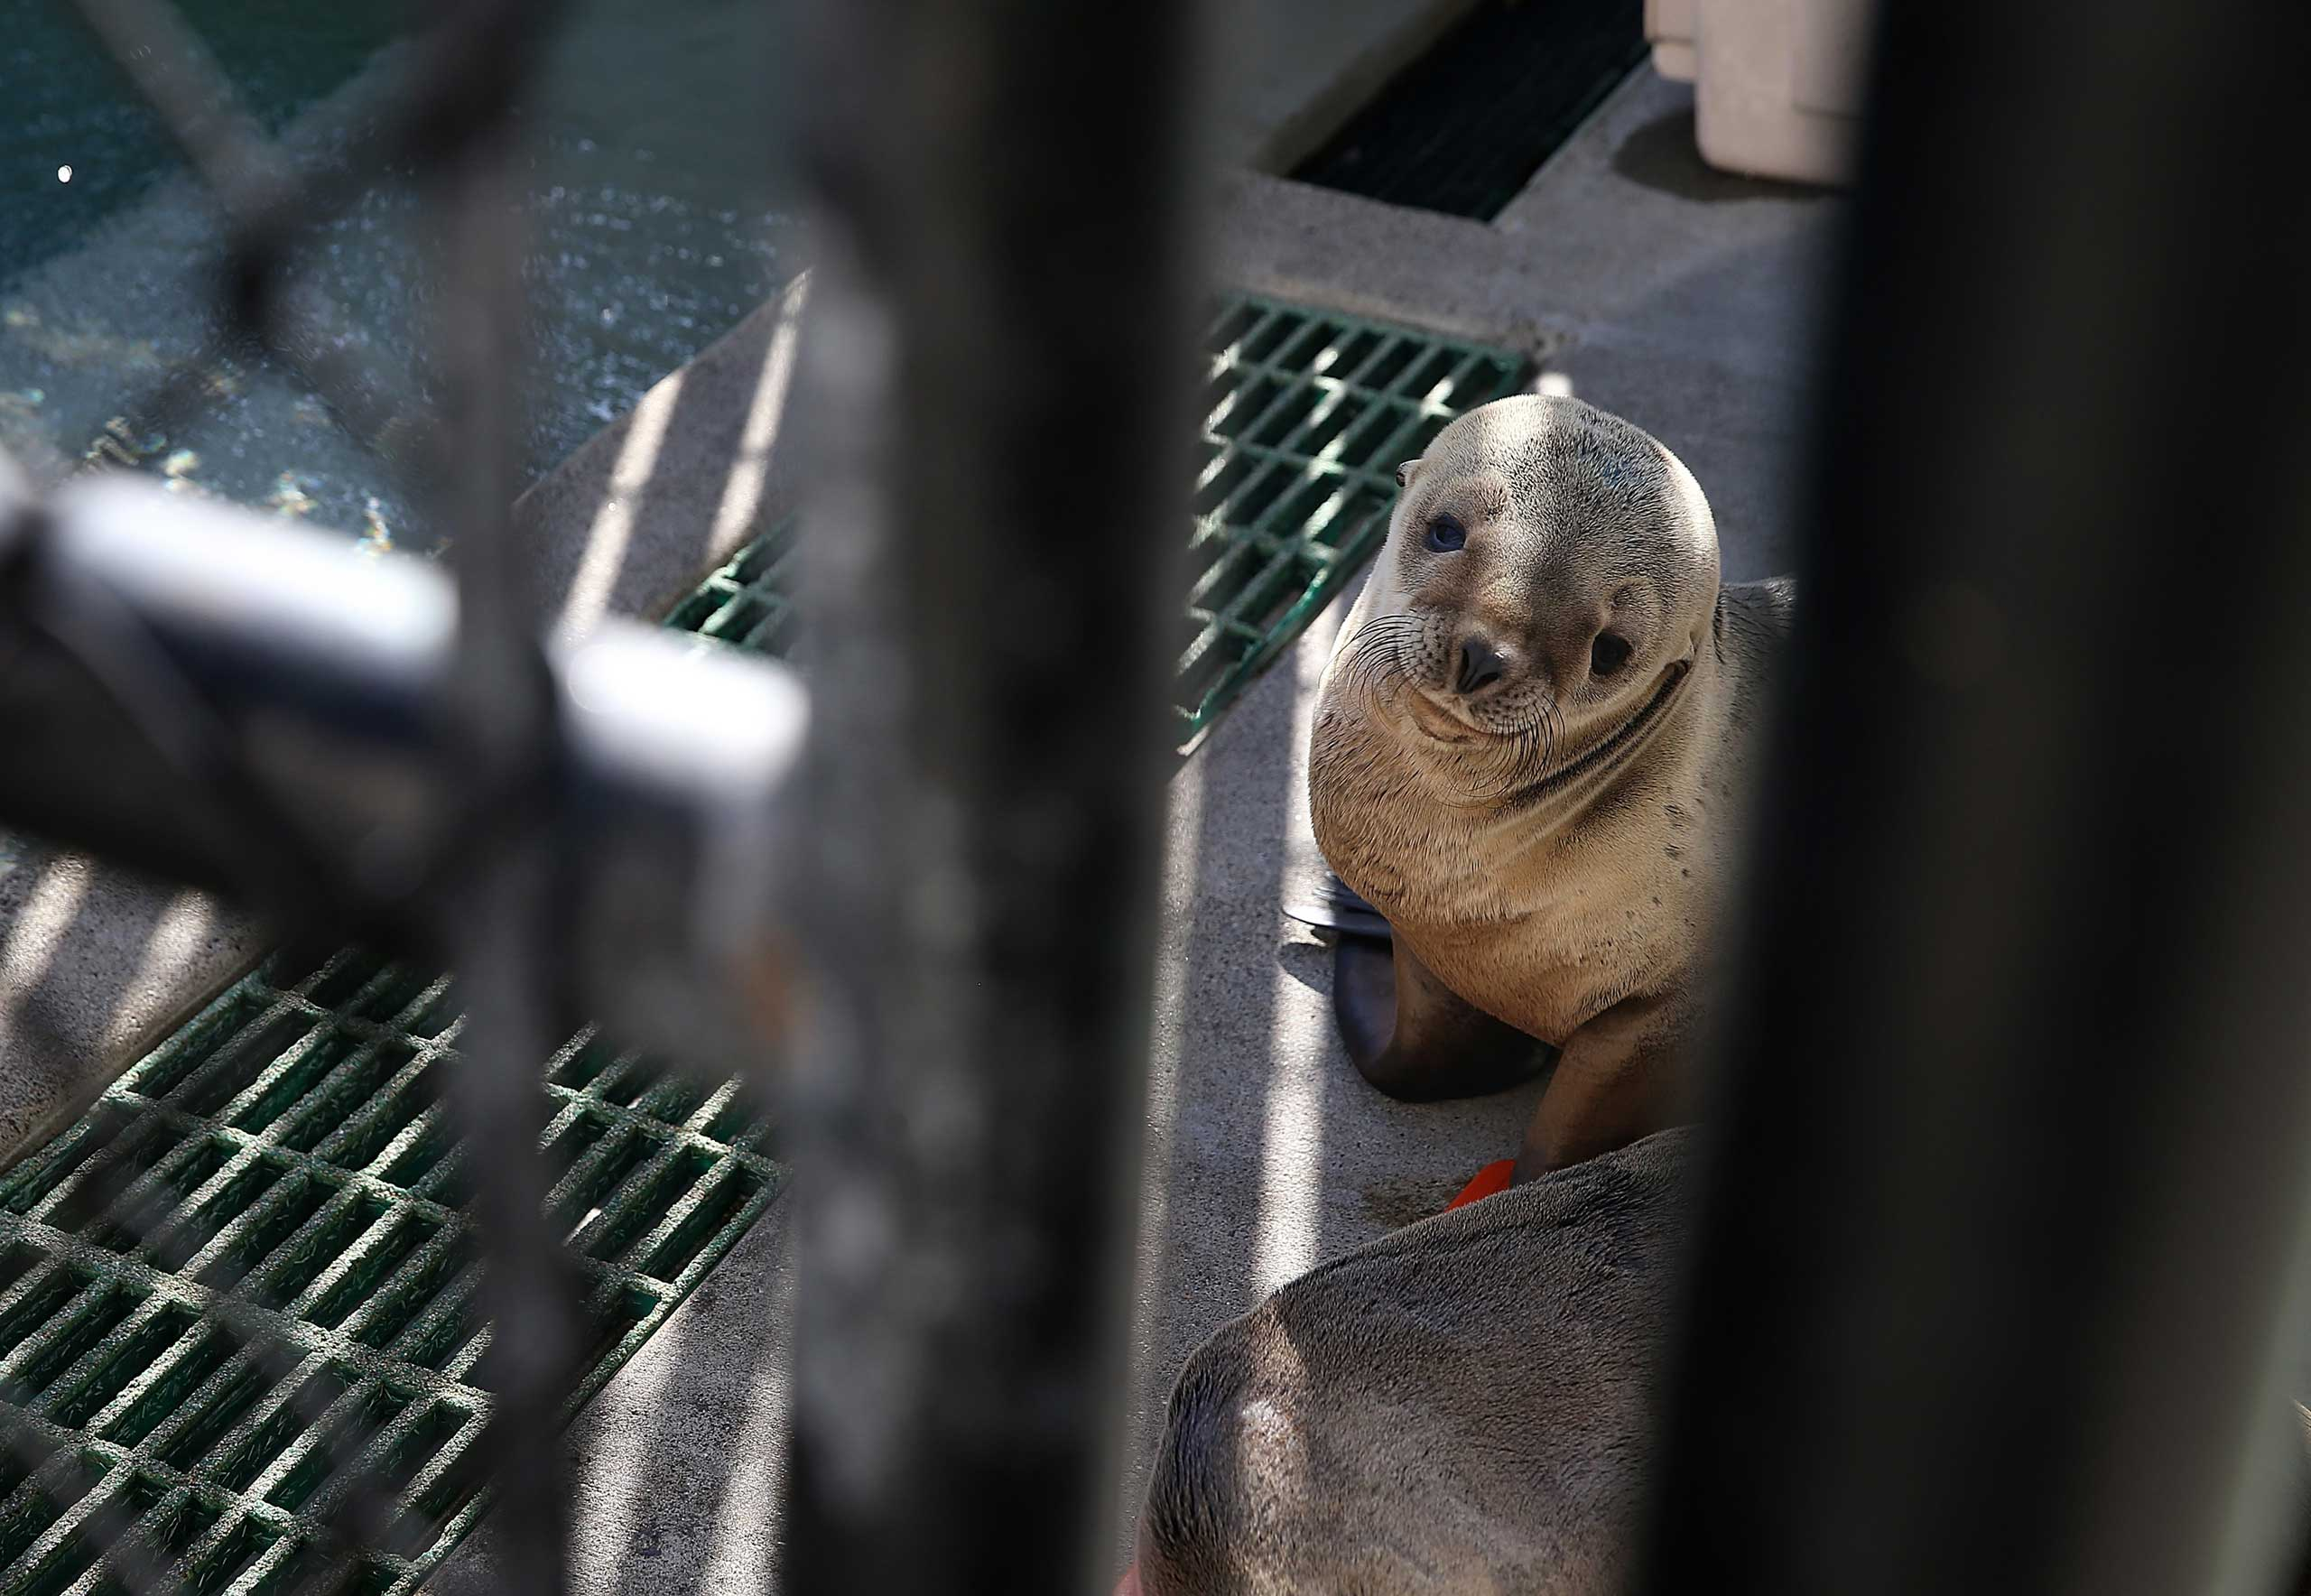 A sick California sea lion pup sits in an enclosure at the Marine Mammal Center on Feb. 12, 2015 in Sausalito, California.